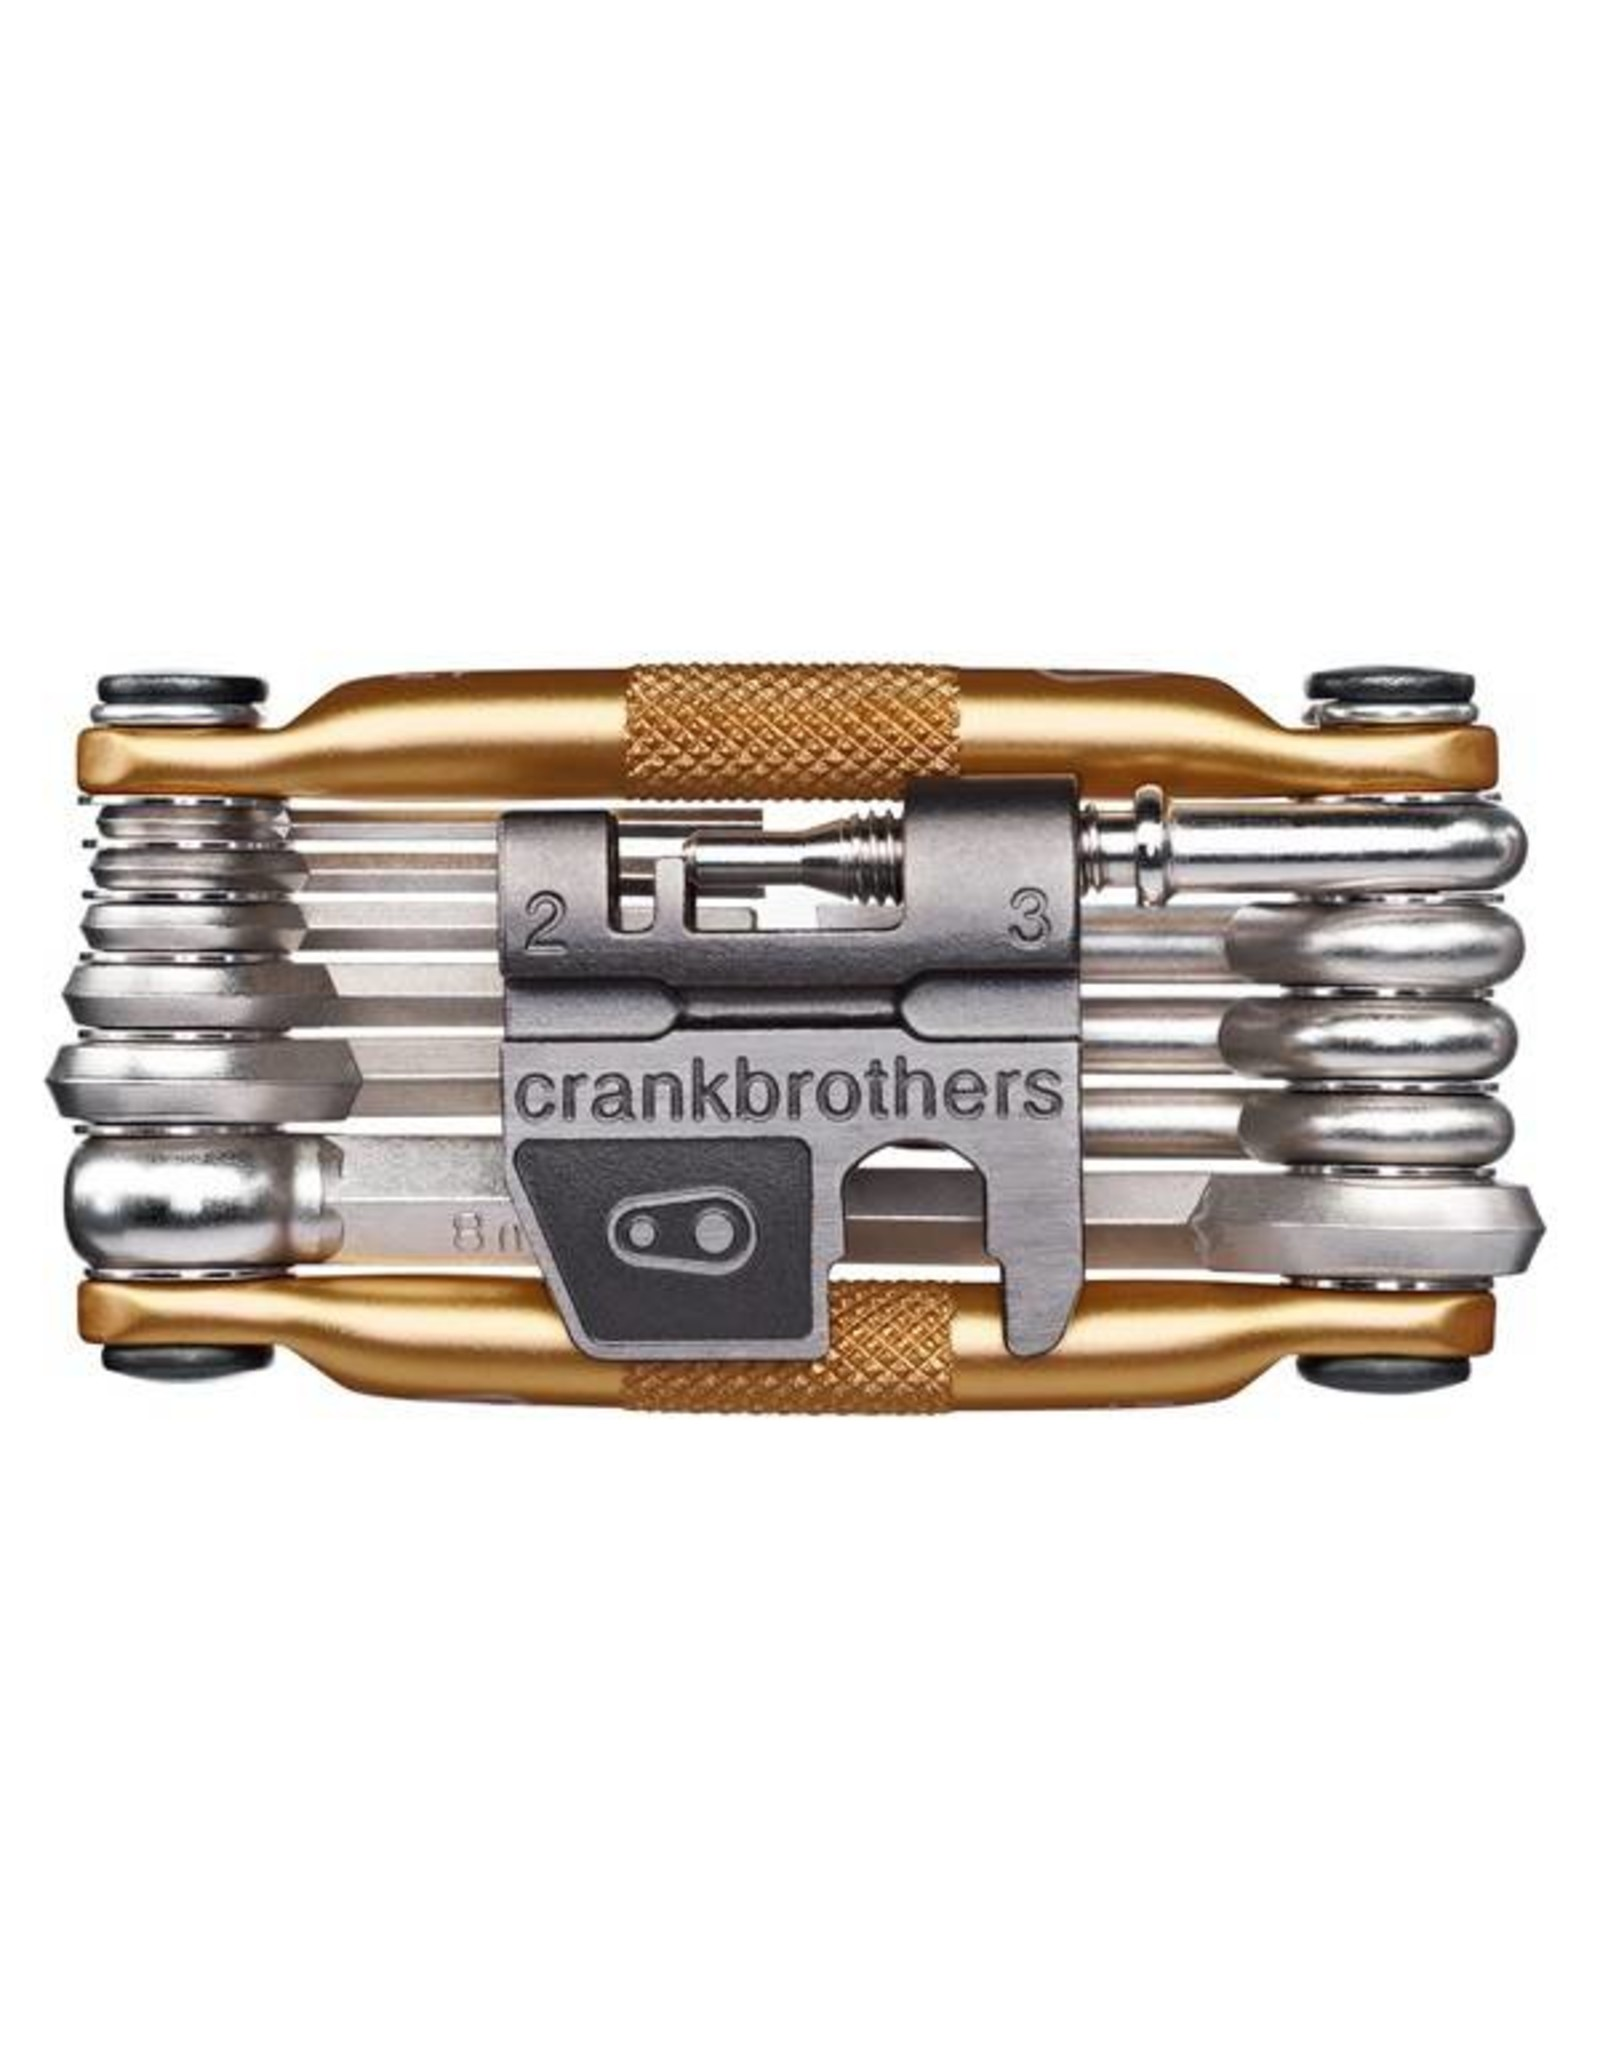 Crank Brothers Crank Brothers Multi-17 Tool - Gold